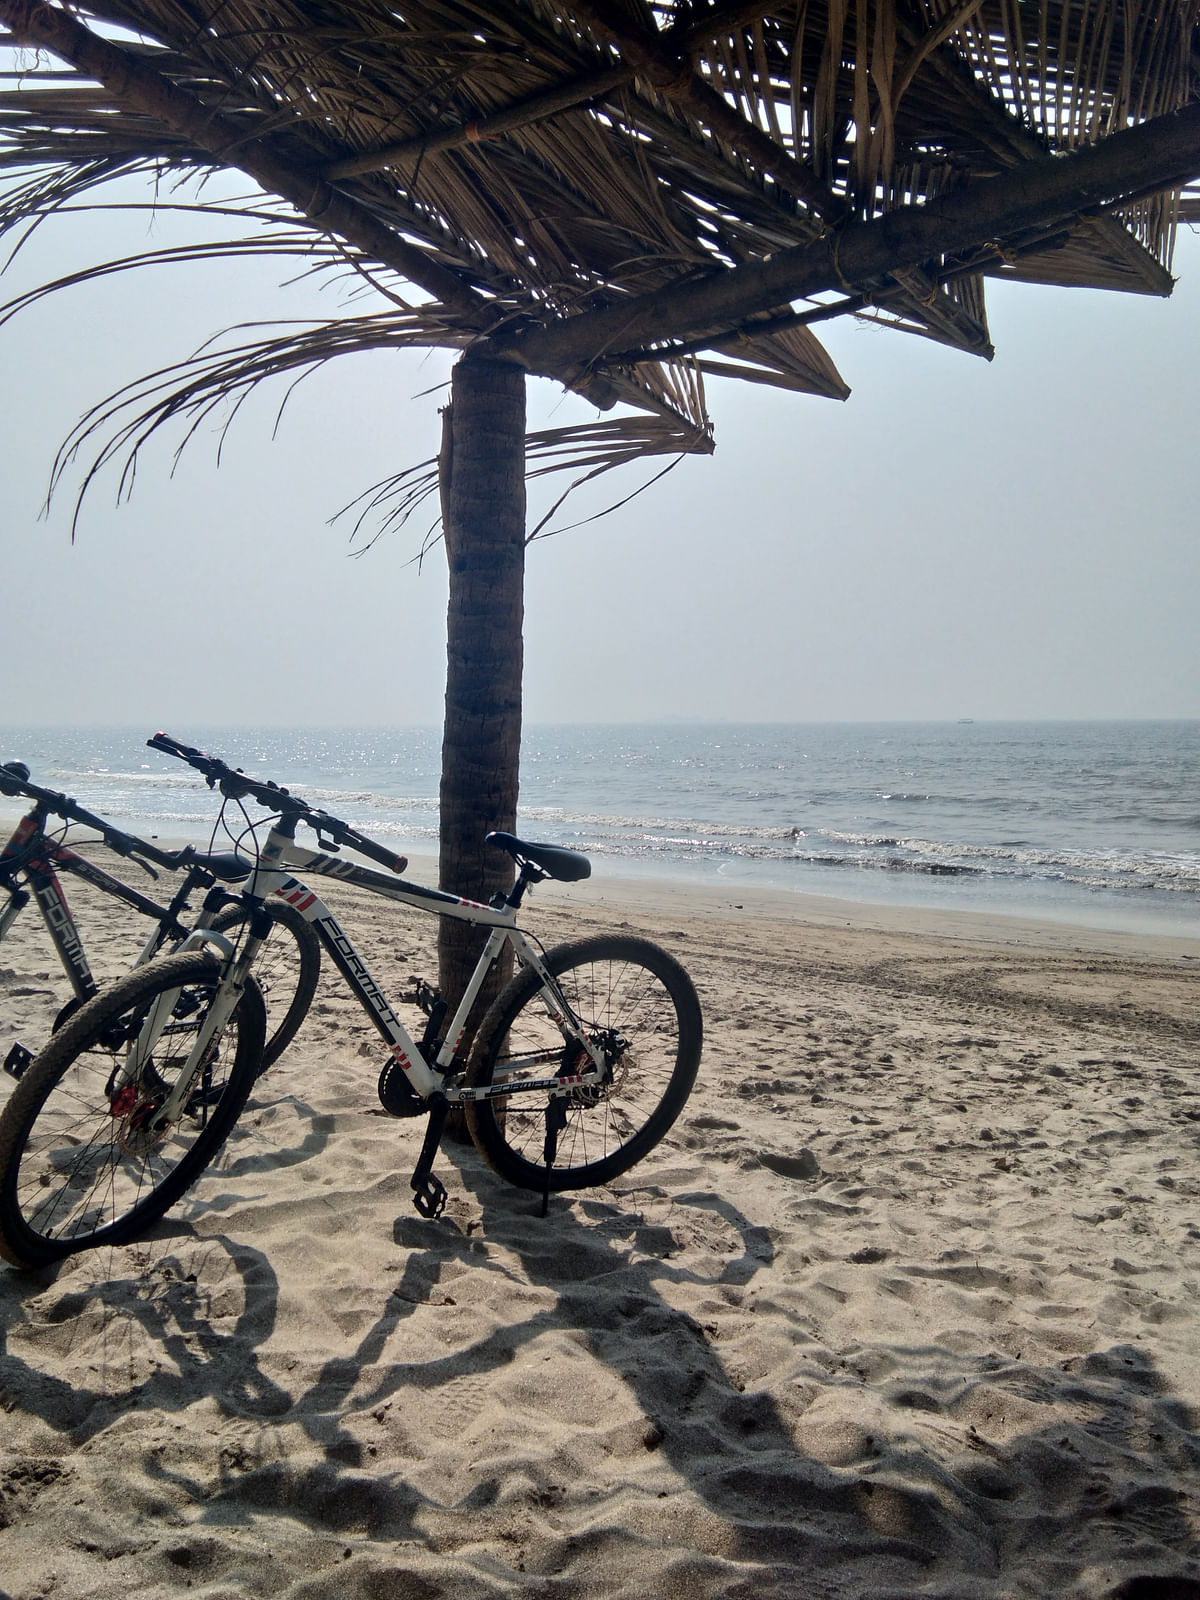 We cycled on, ticking off kilometre after kilometre – genuinely forgetting to keep track of how long we'd come.